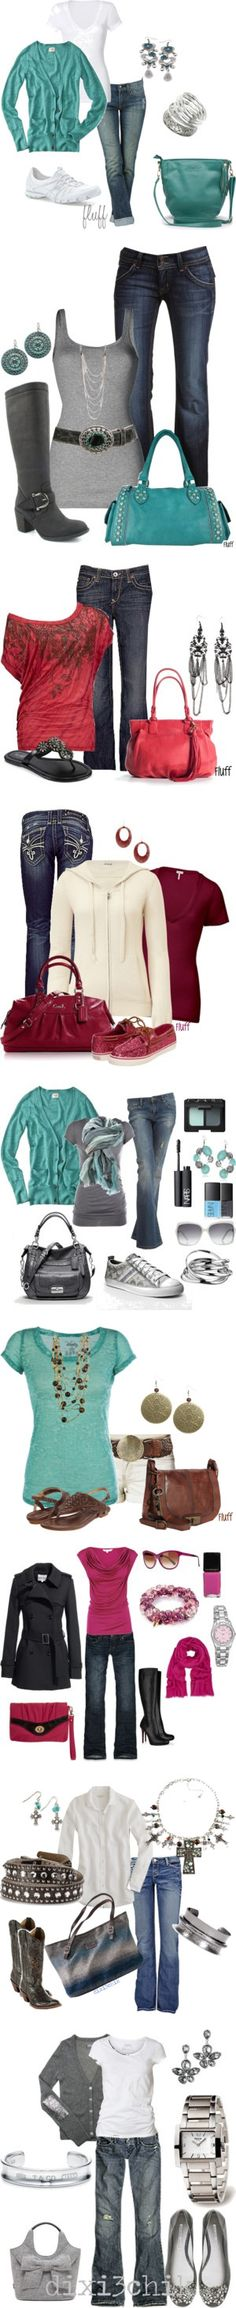 """""""Relaxed"""" by mspaulding on Polyvore"""